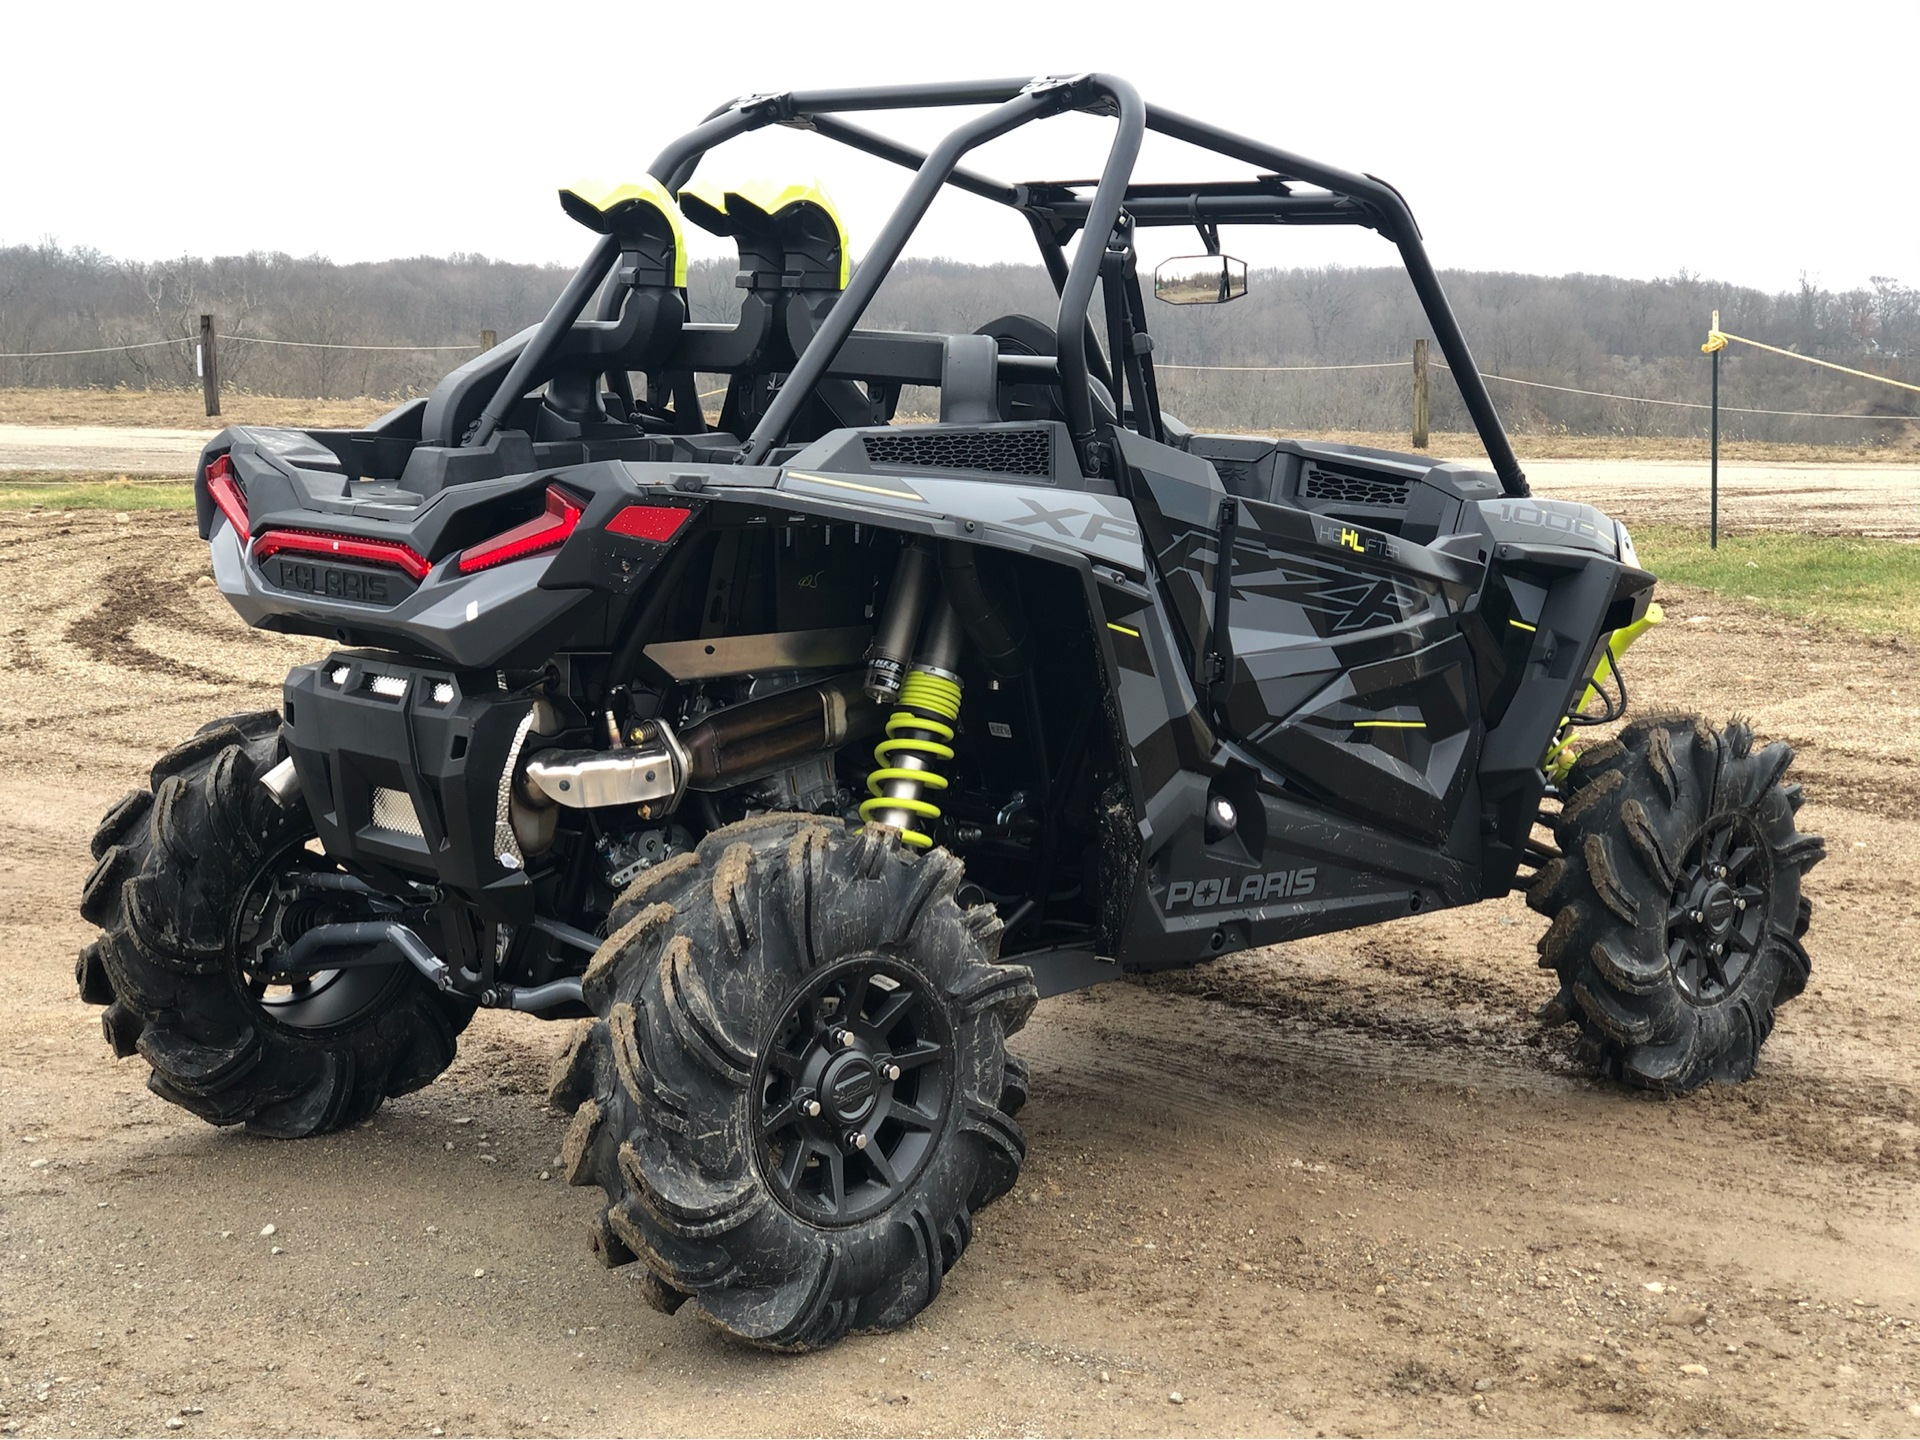 2020 Polaris RZR XP 1000 High Lifter in Attica, Indiana - Photo 2